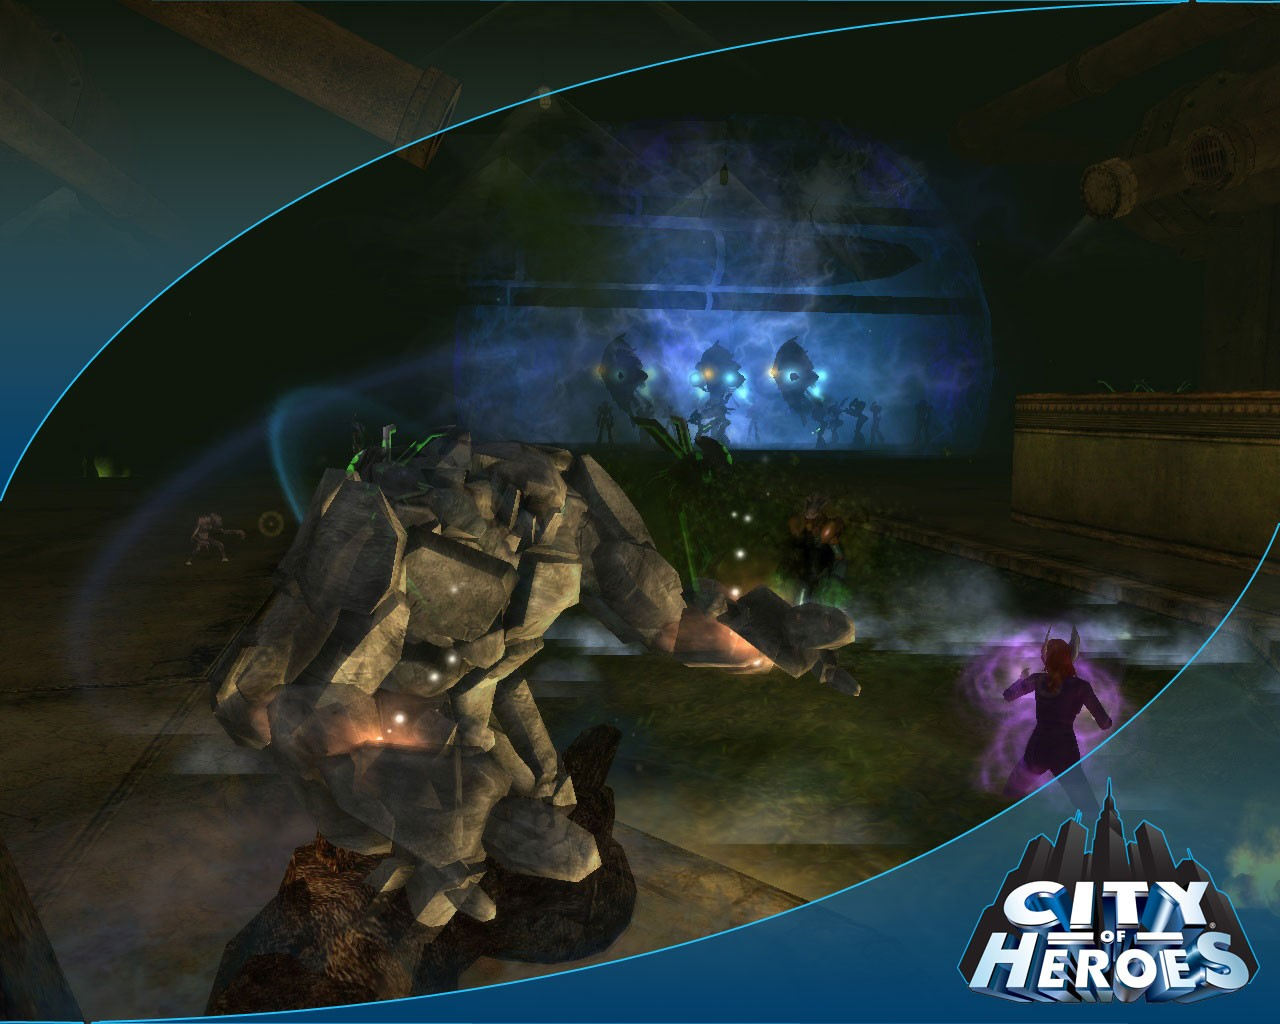 City of Heroes - Stonetank with team, fighting rikti in a sewer.